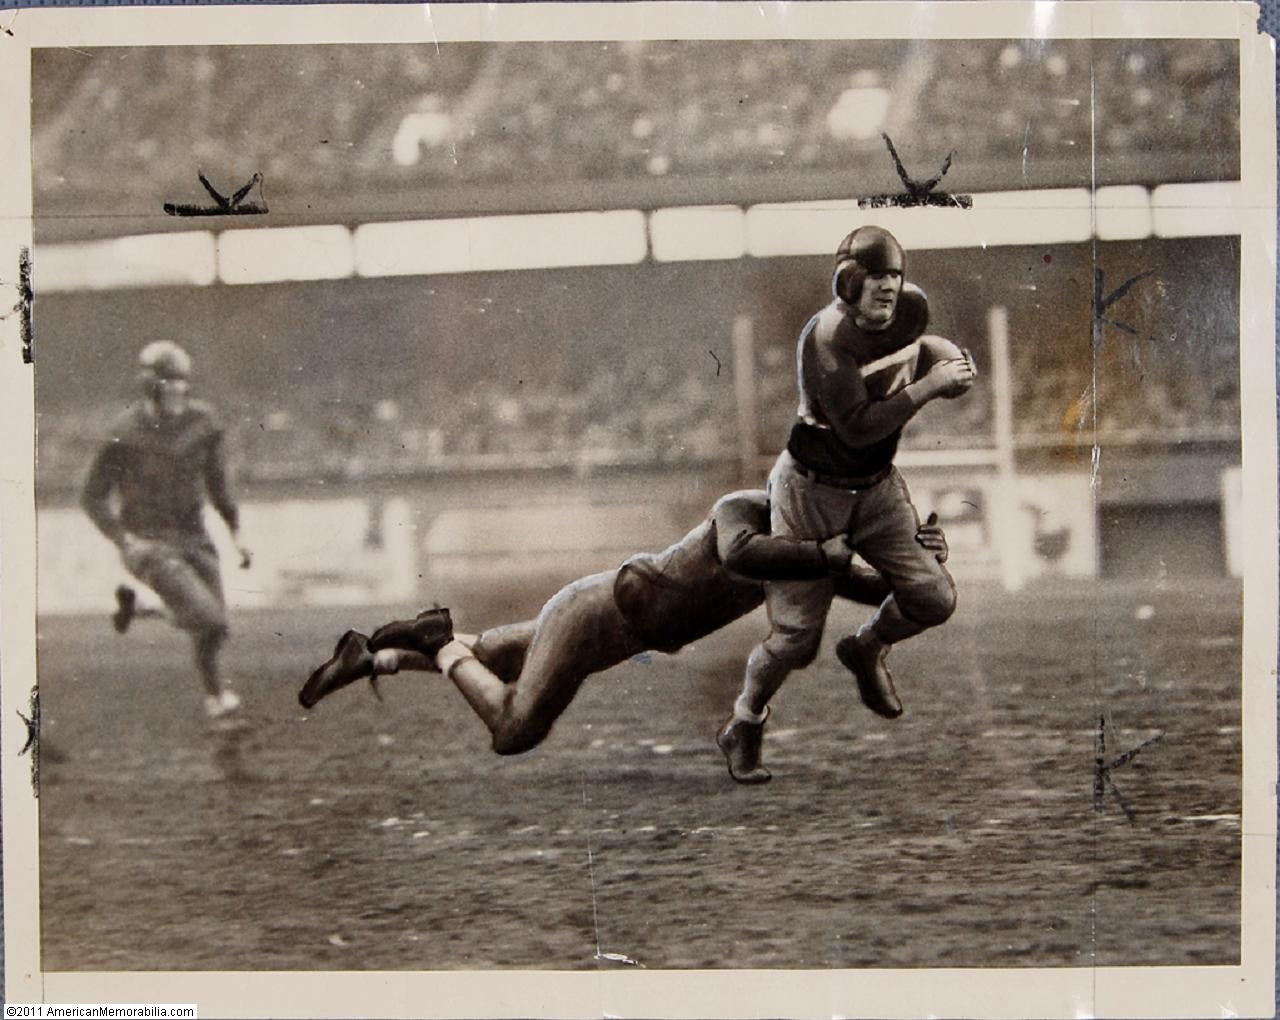 New York Football Giants at Brooklyn Football Dodgers (November 30, 1933)